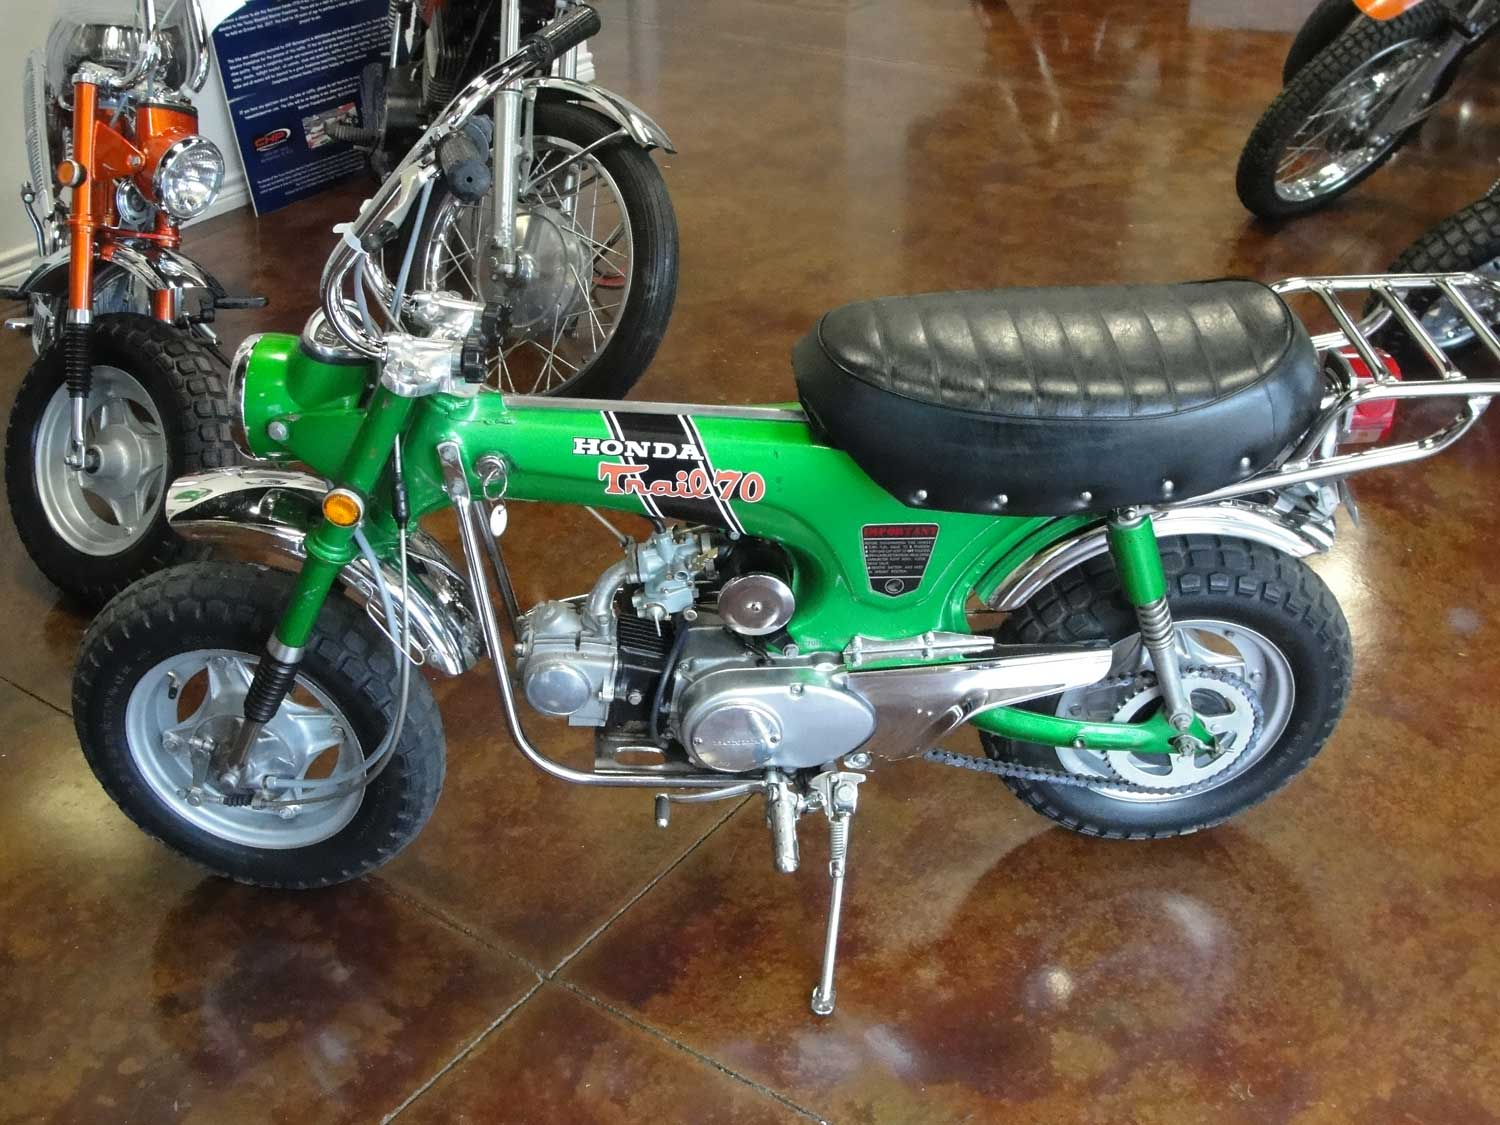 Bfs Ct70 H Ko Original Shriner Bike 1880 Miles Emerald Green With 1970 Honda Throttle Cable If You Have Any Question About This Other Of The Bikes That We Will Be Listing Please Do Not Hesitate To Reach Out Price 450000 Sold